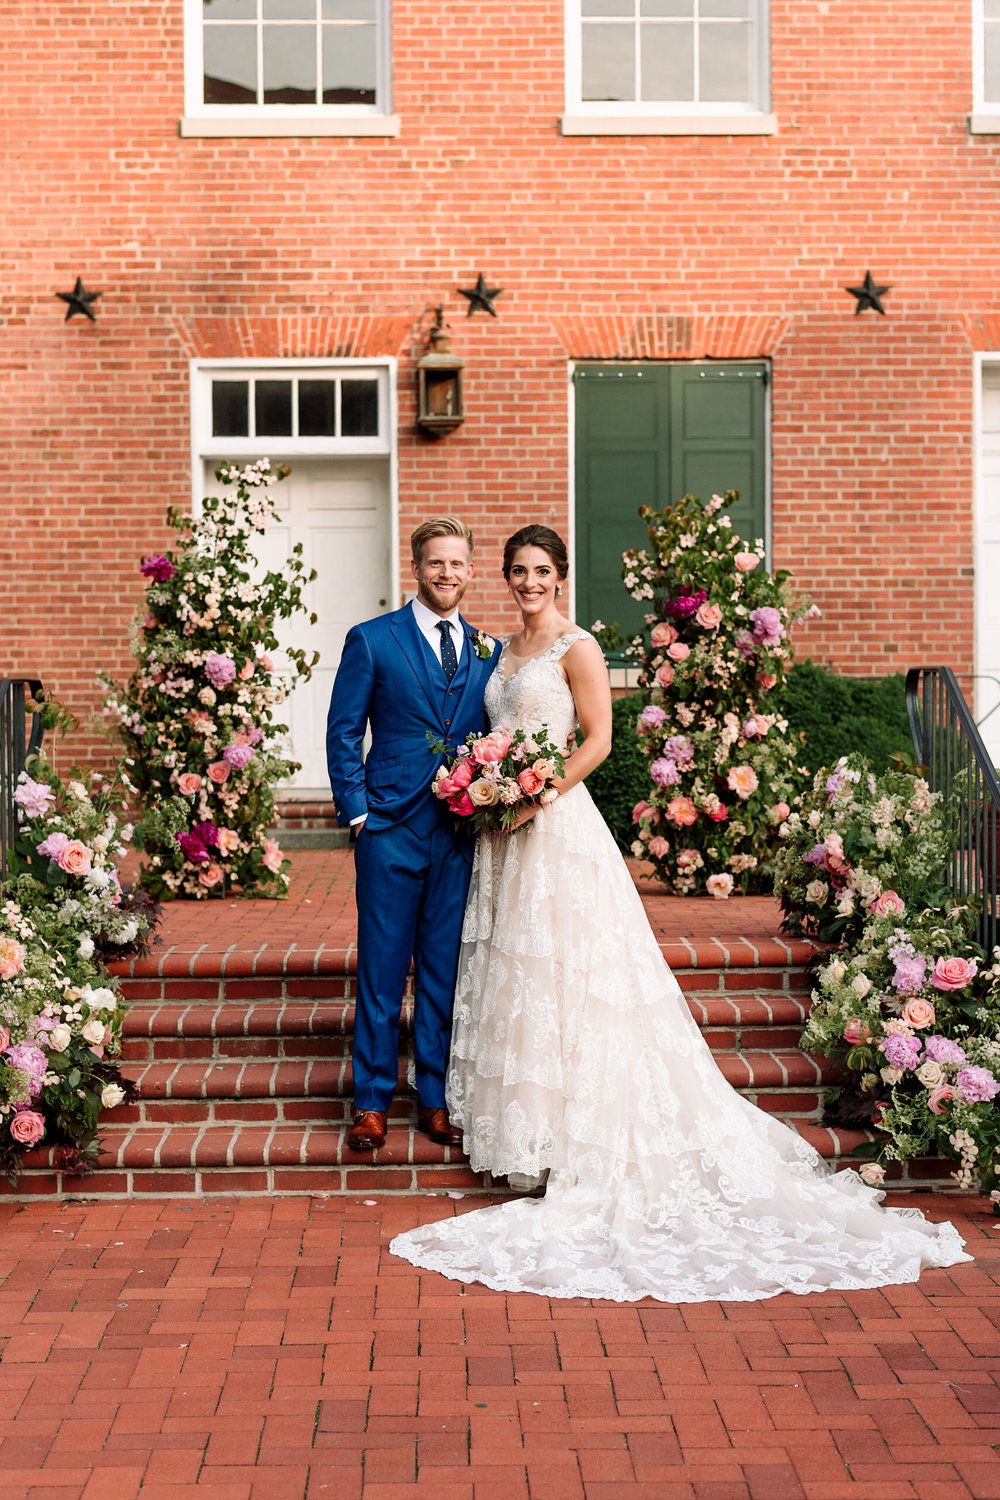 Sophie Felts Floral Design | L + B at The 1840's Plaza | DC Wedding Florist | Maryland Wedding Florist